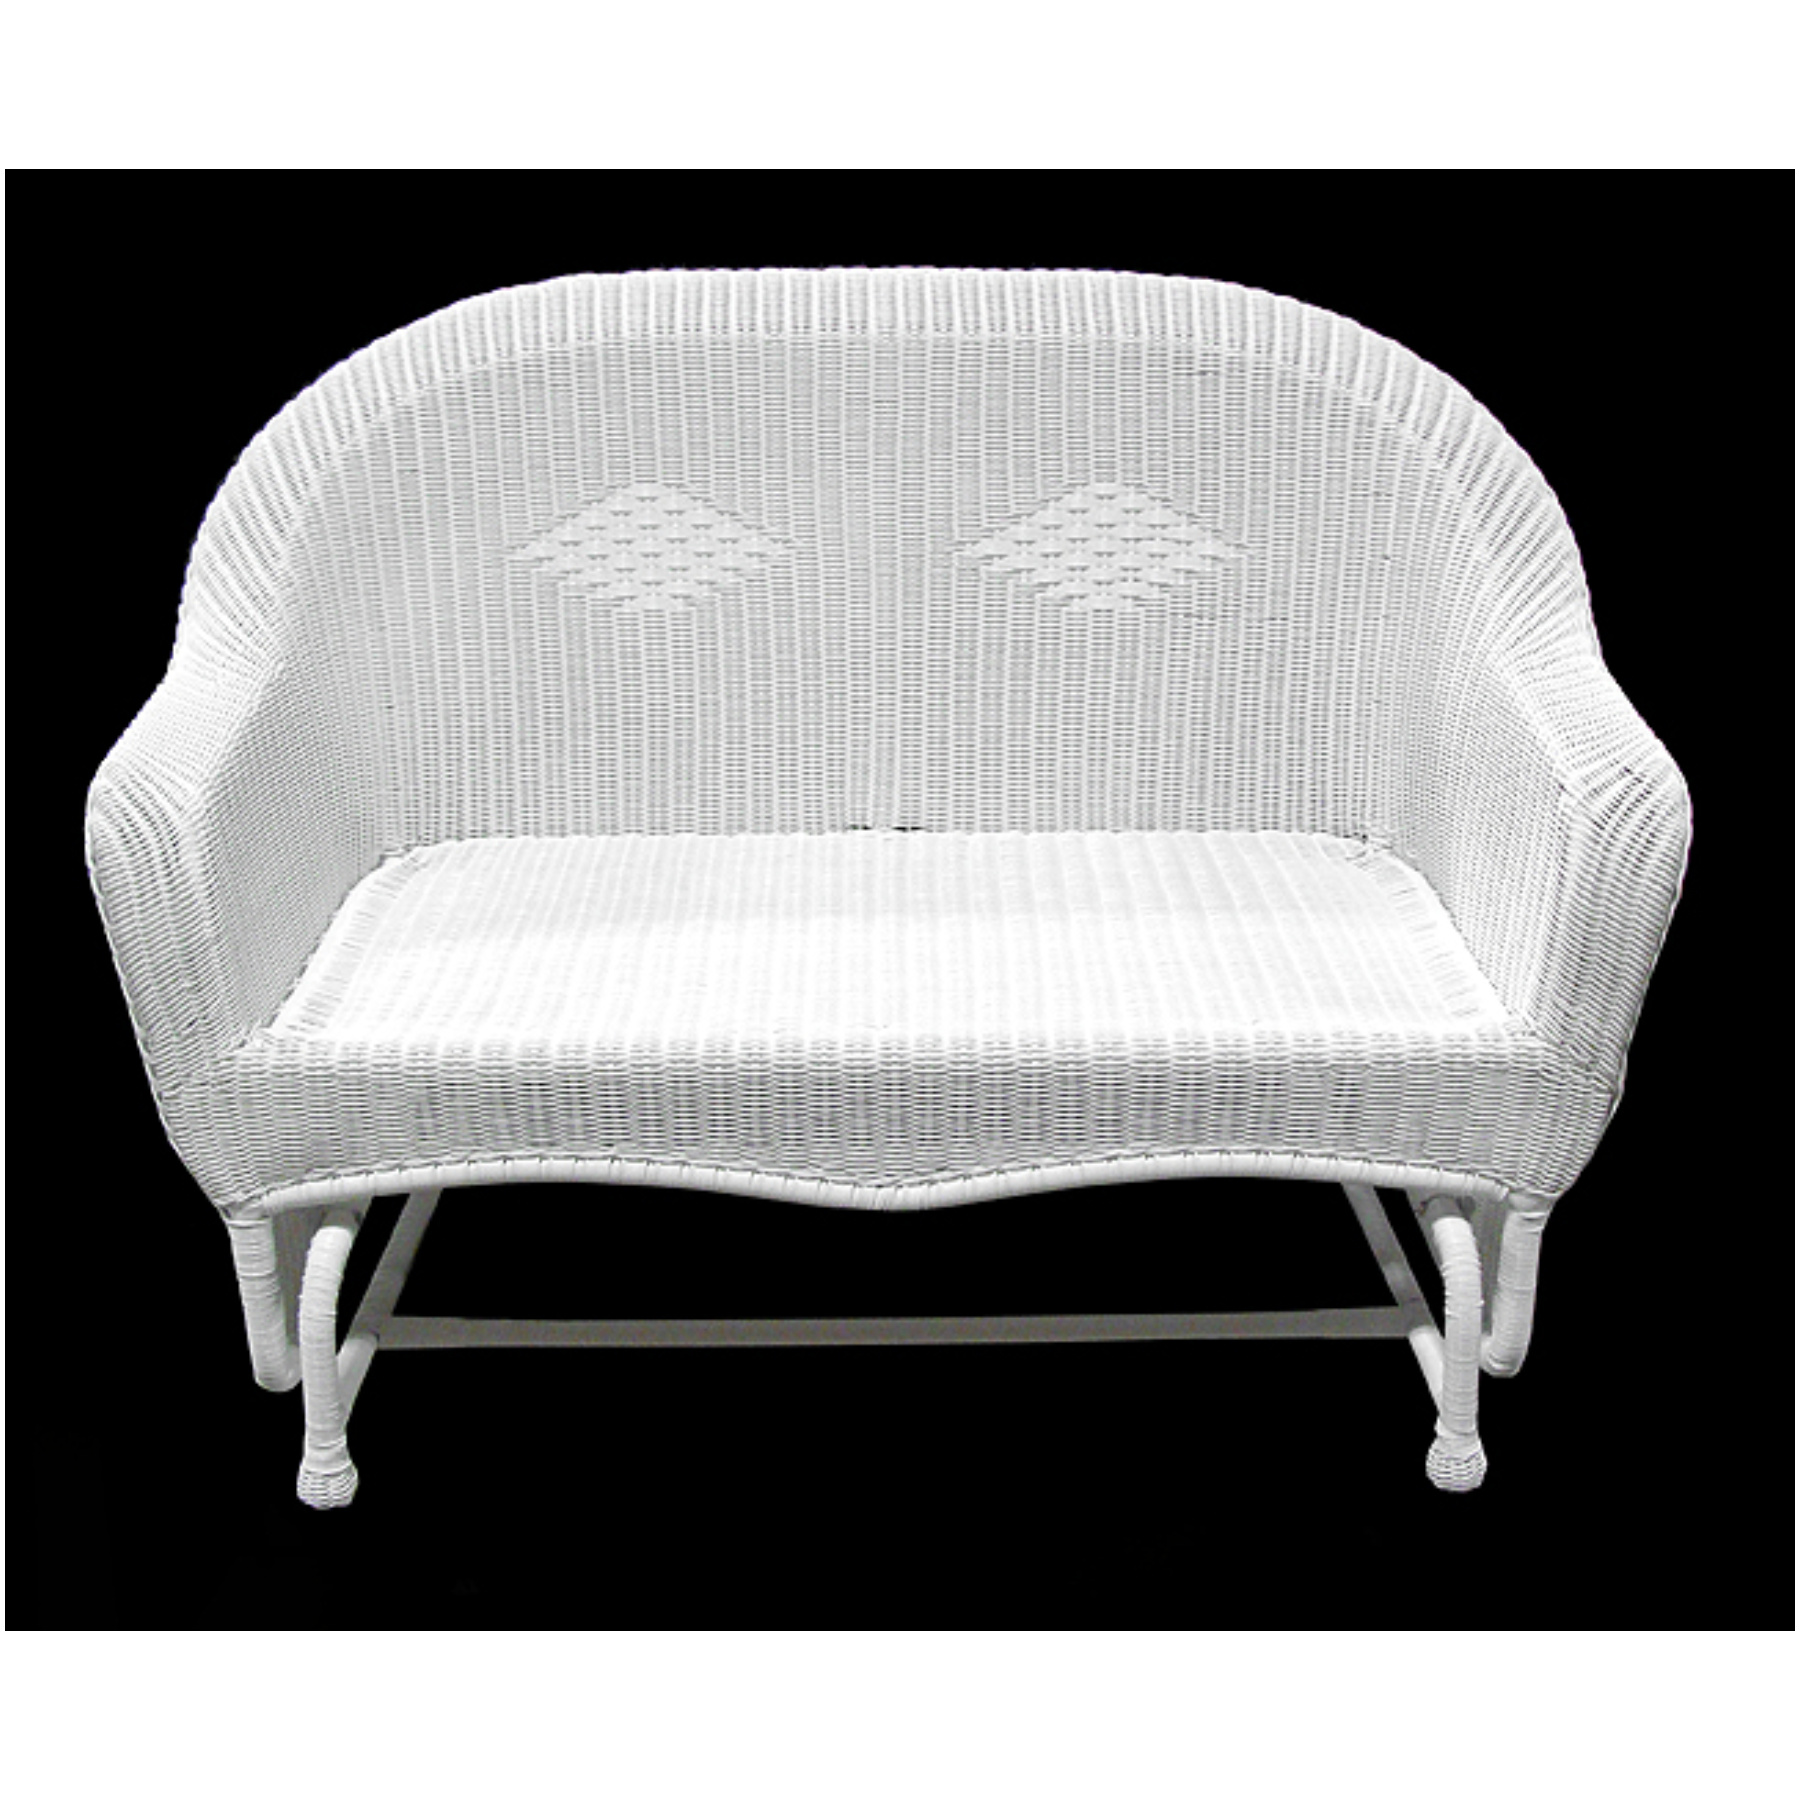 Image of: White Patio Glider Chair